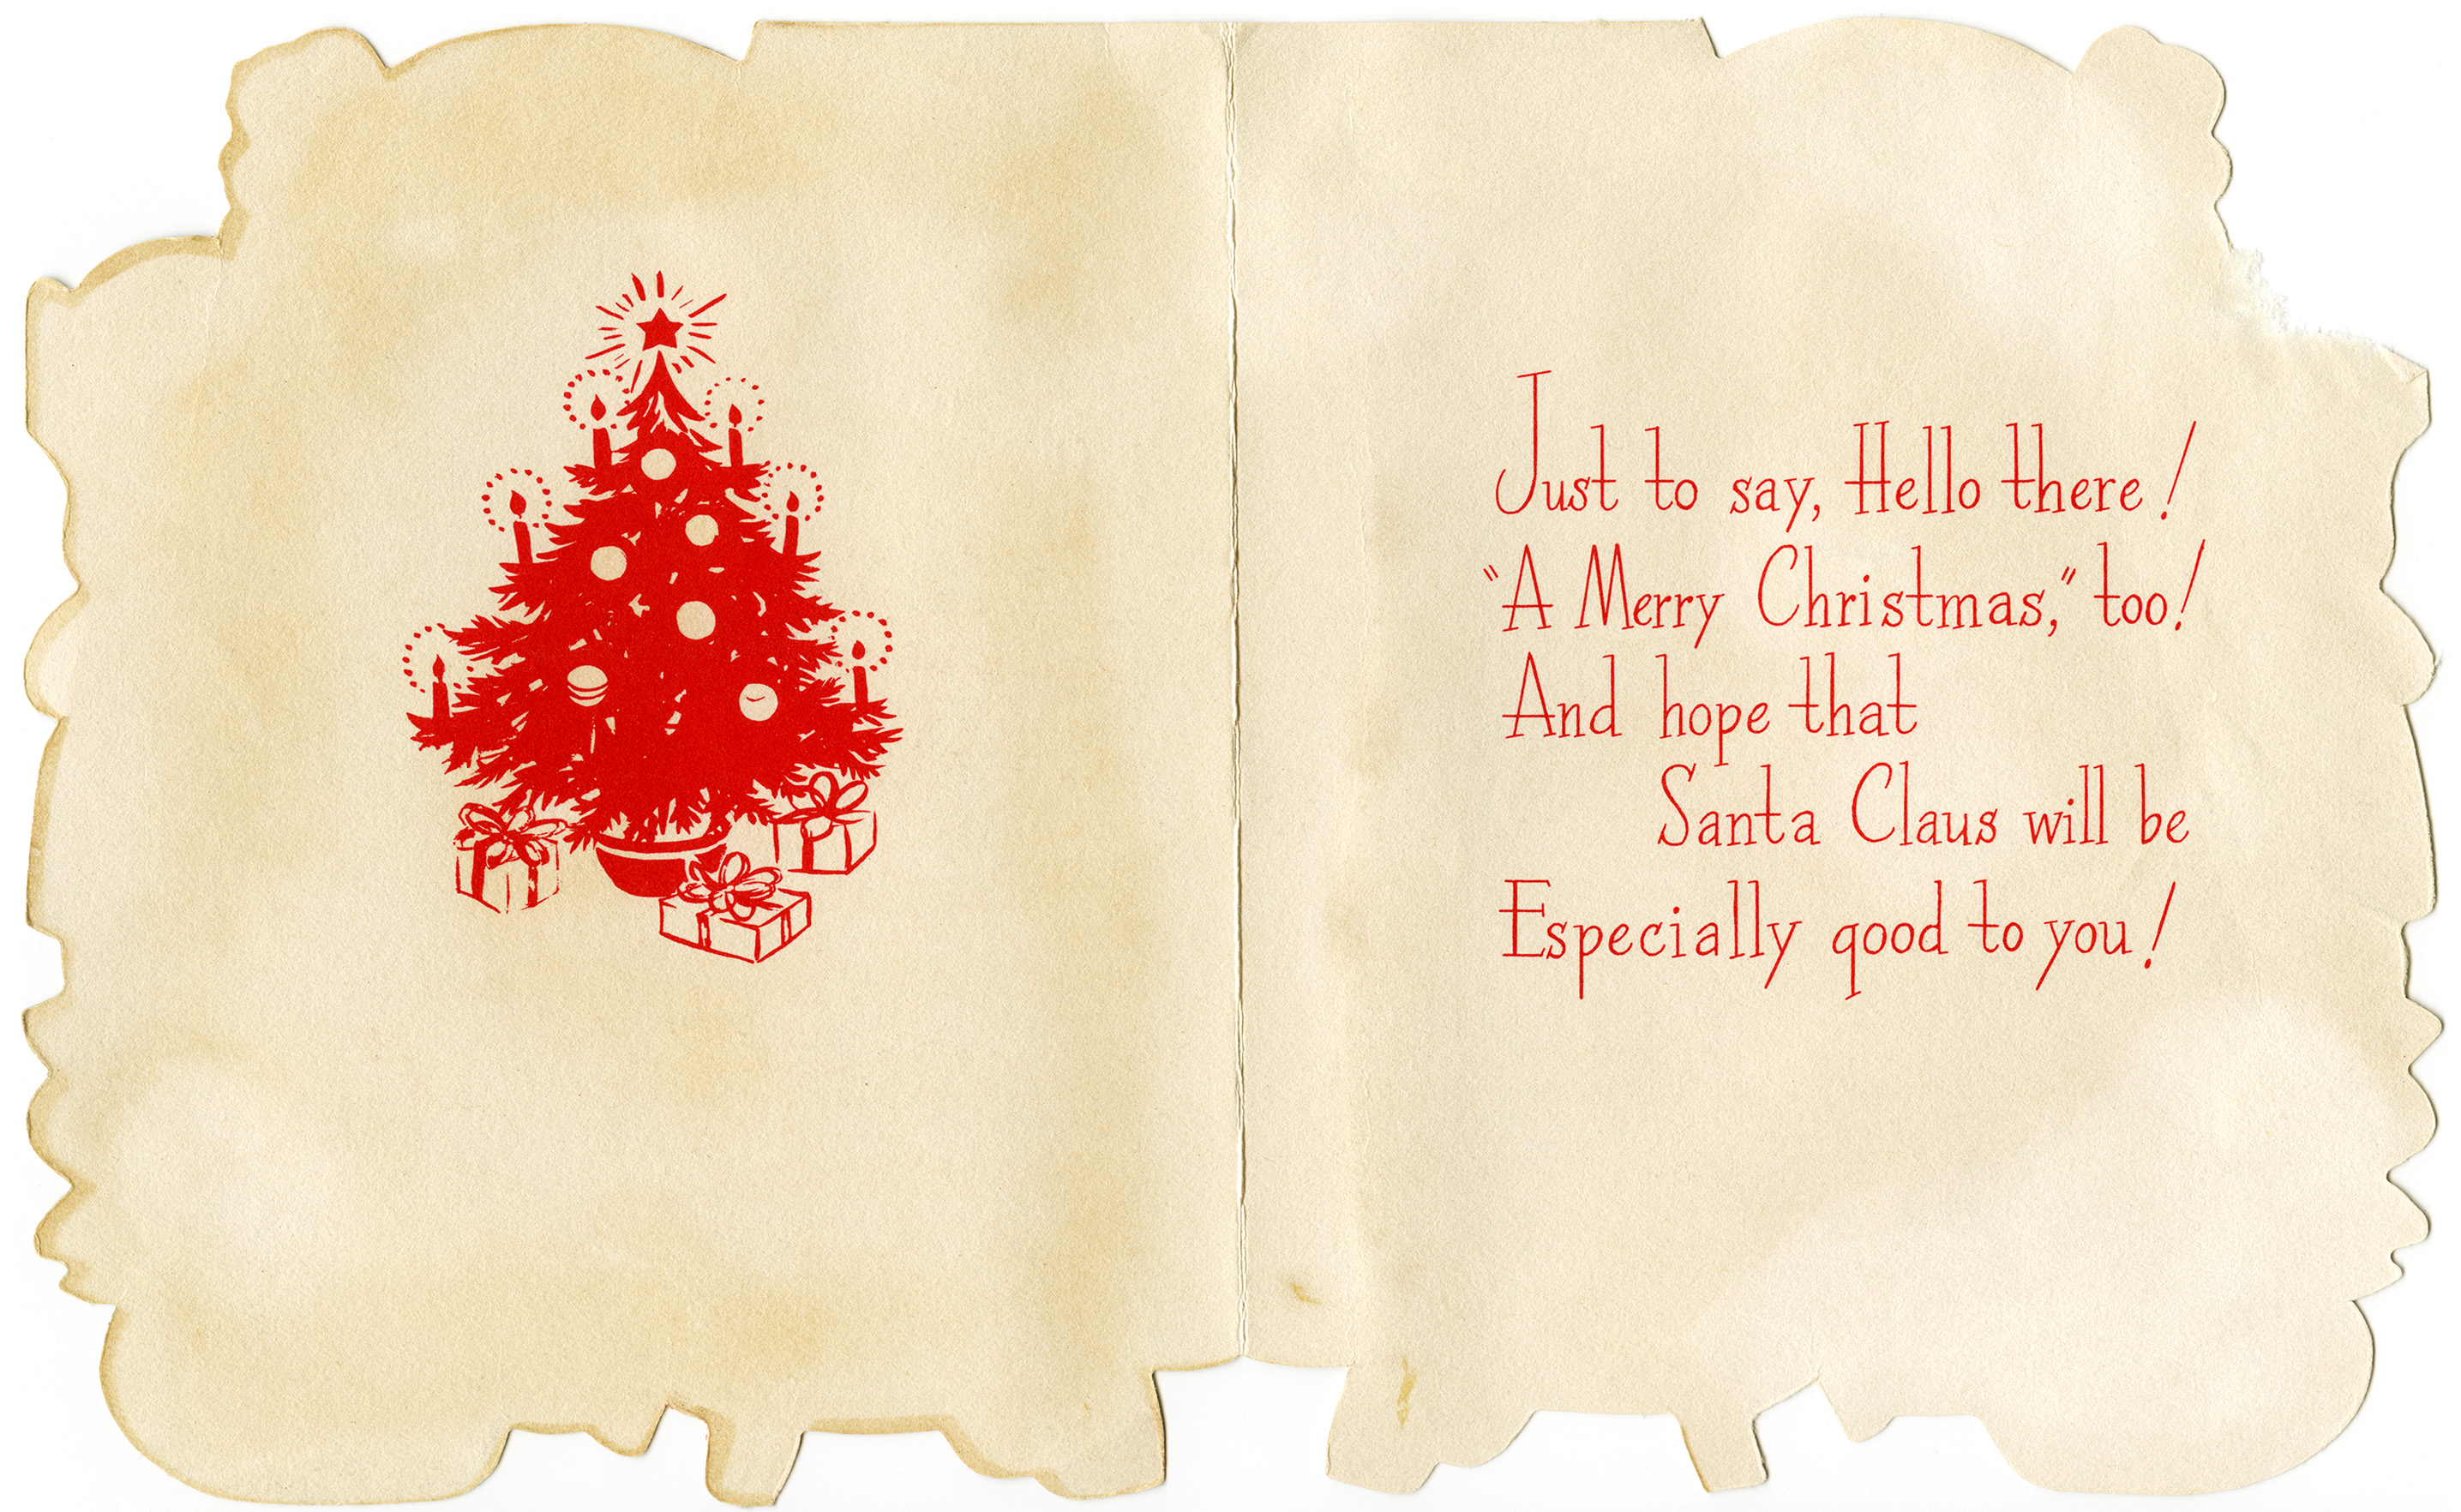 Company Holiday Greeting Messages